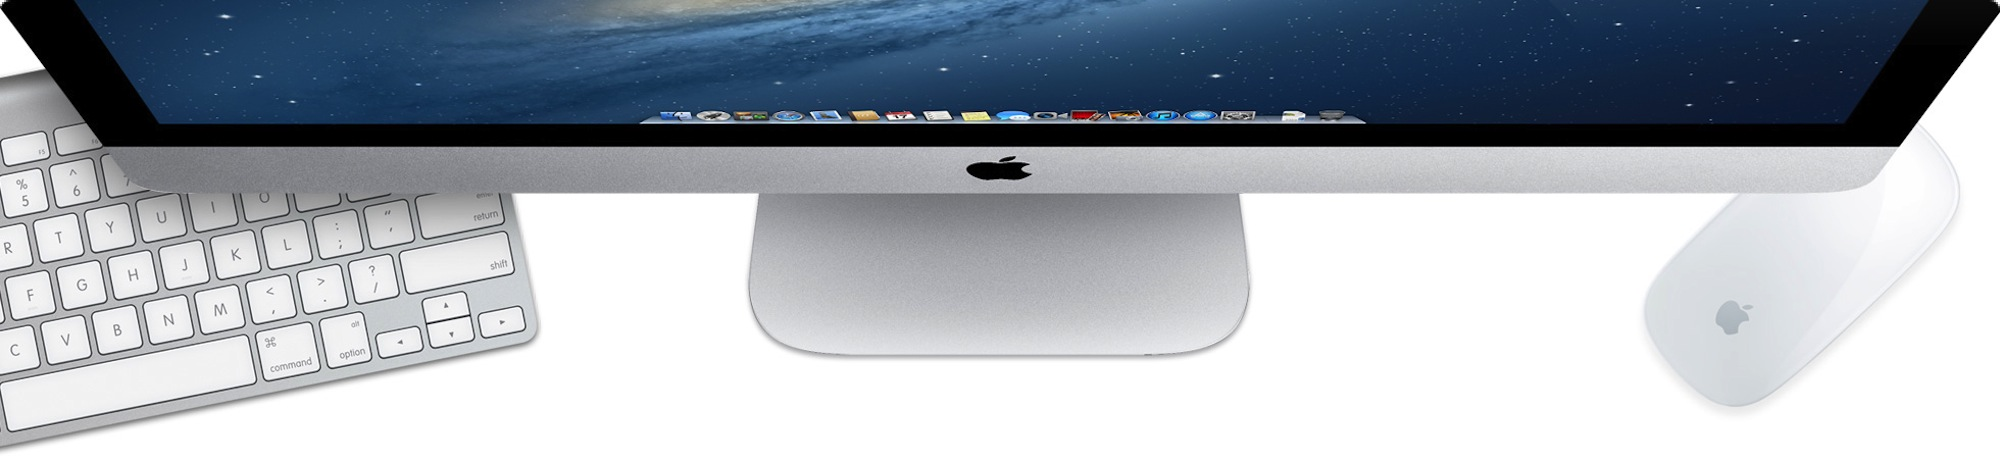 iMac 27 from top with keyboard and mouse